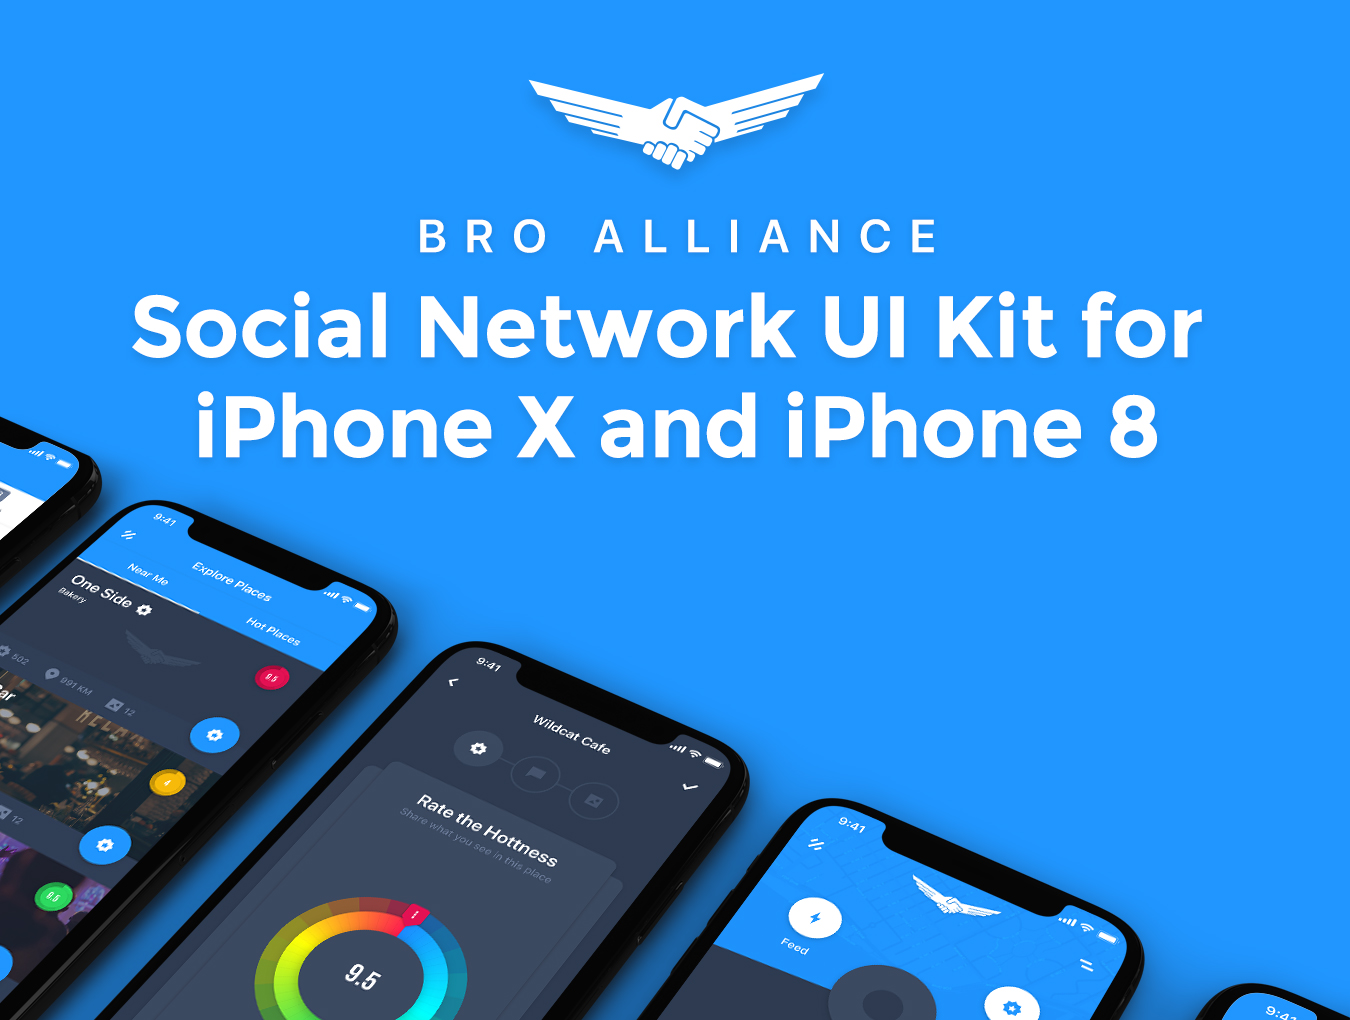 IOS11风格蓝色社交行业APP Bro Alliance iOS UI Kit